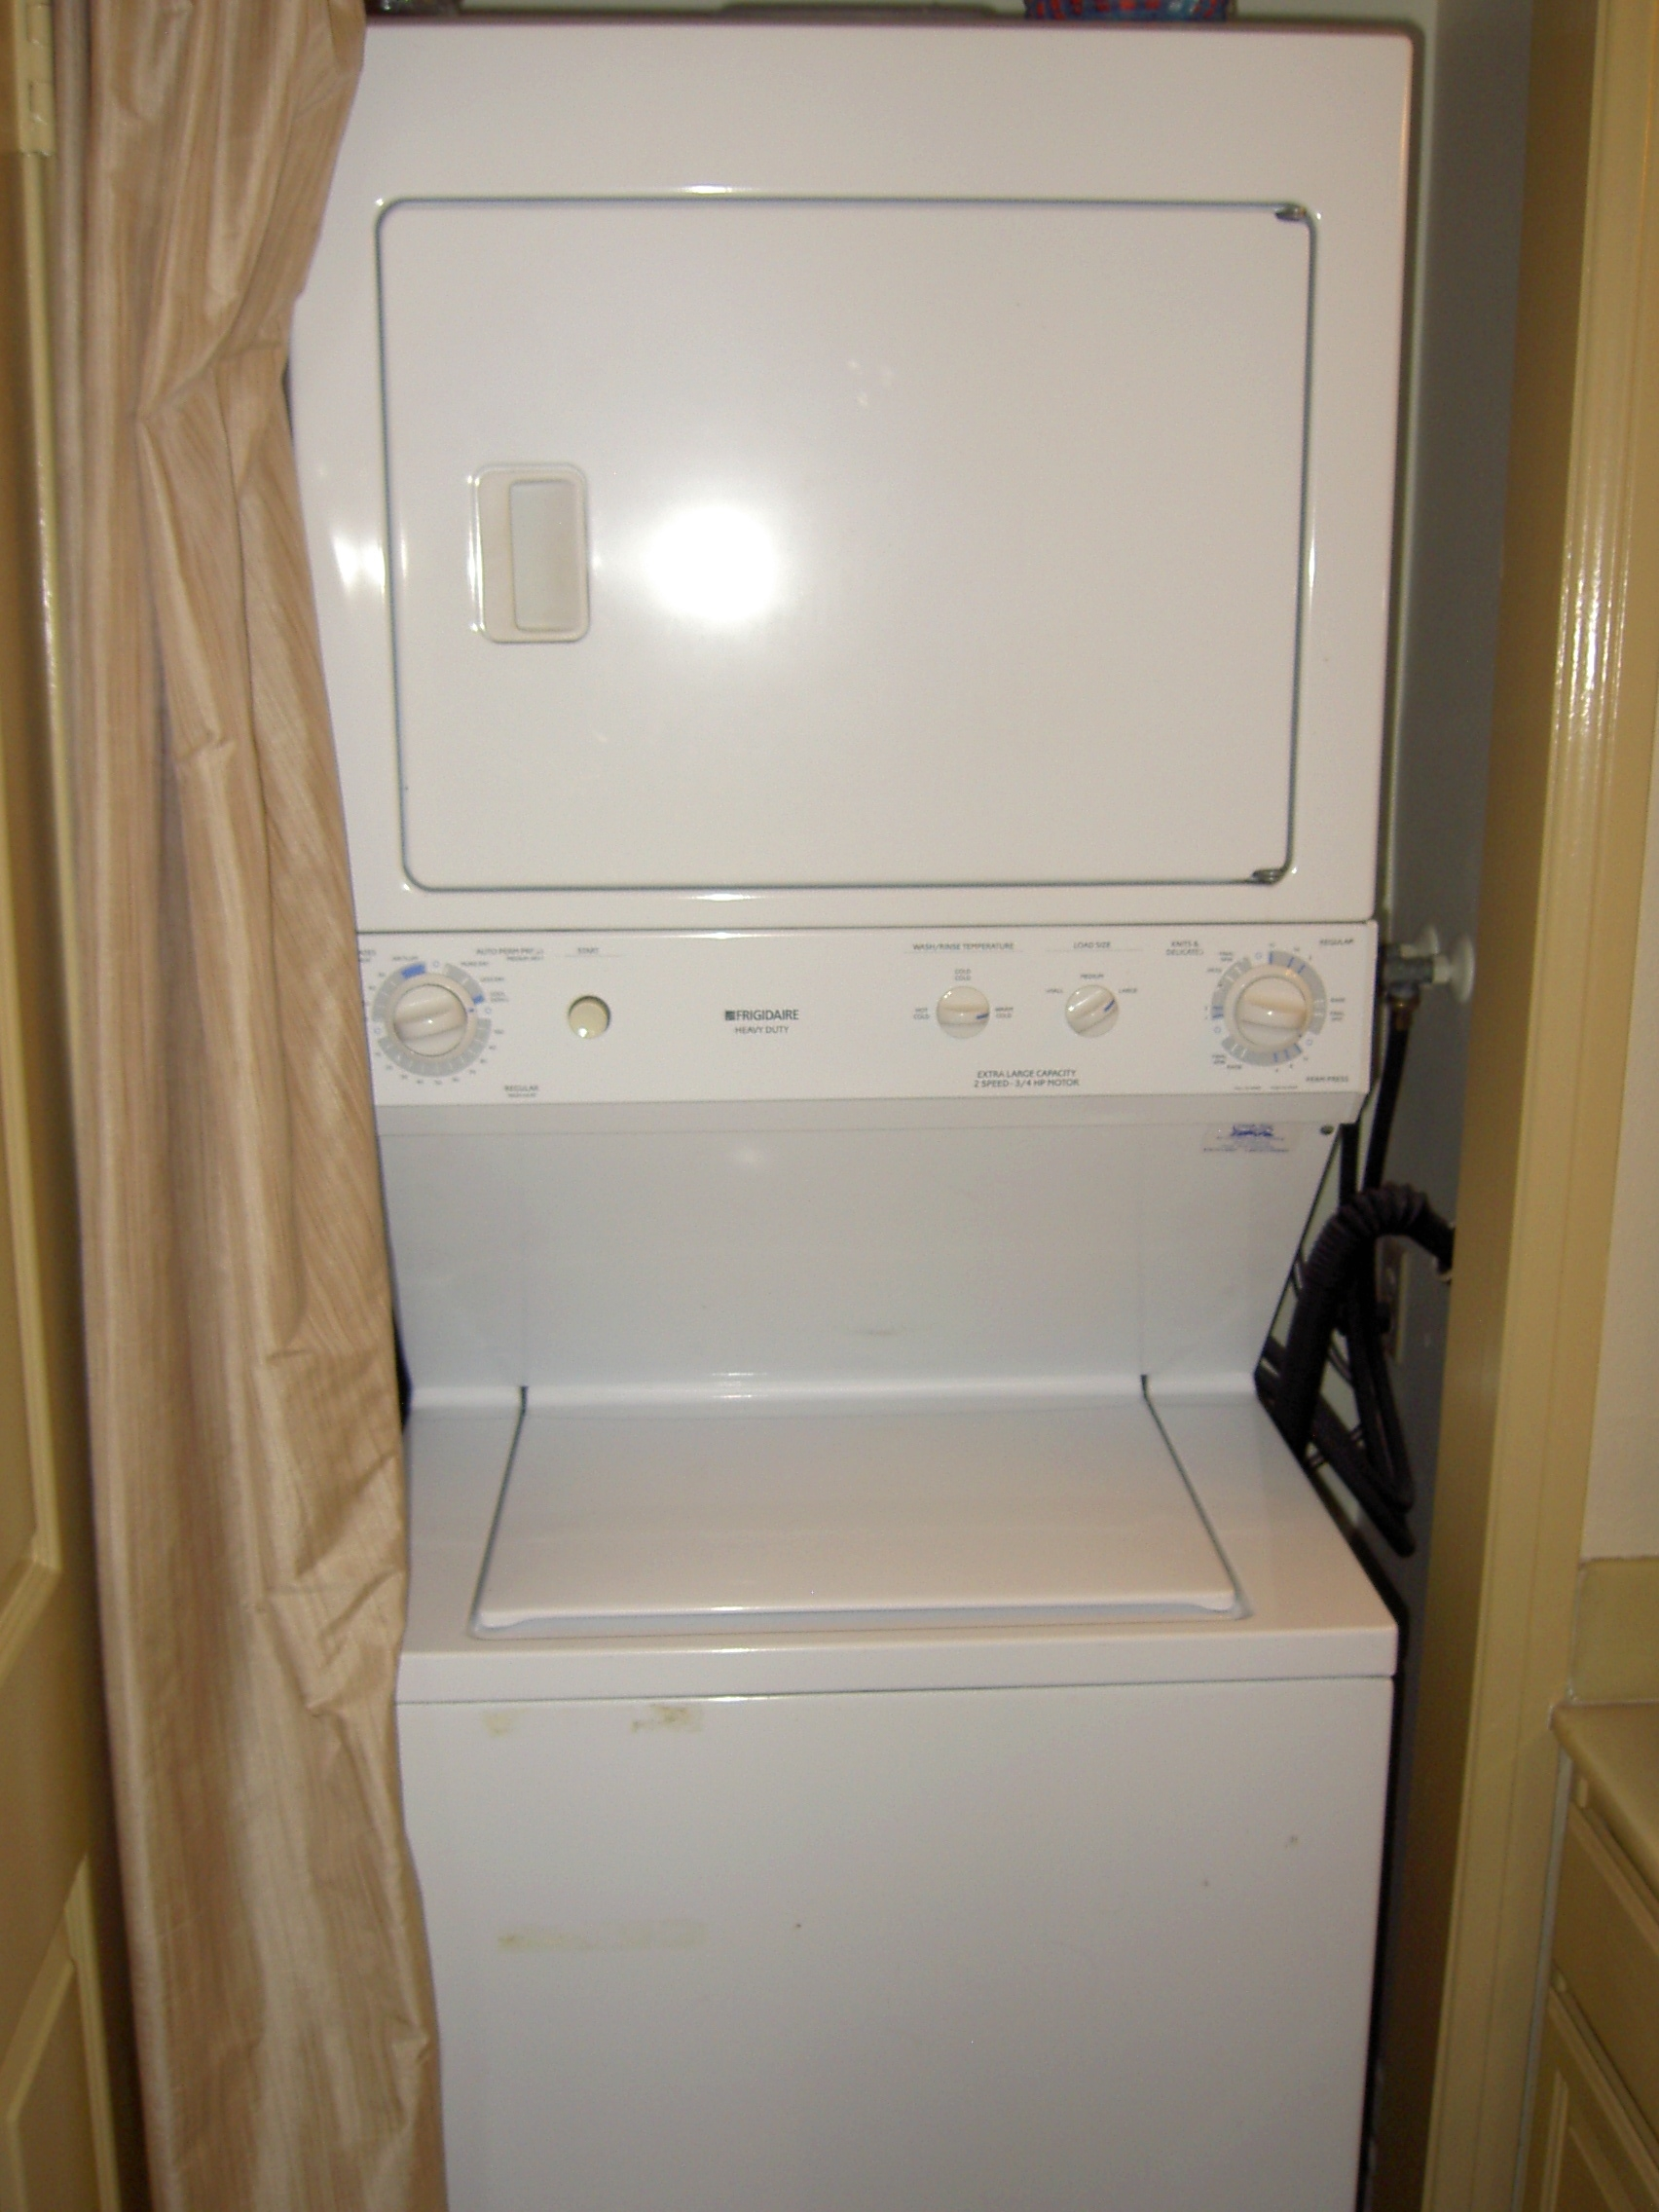 Space saving washer dryer combo best small washer for apartment gallery decorating ideas with - Best washer and dryer for small spaces property ...